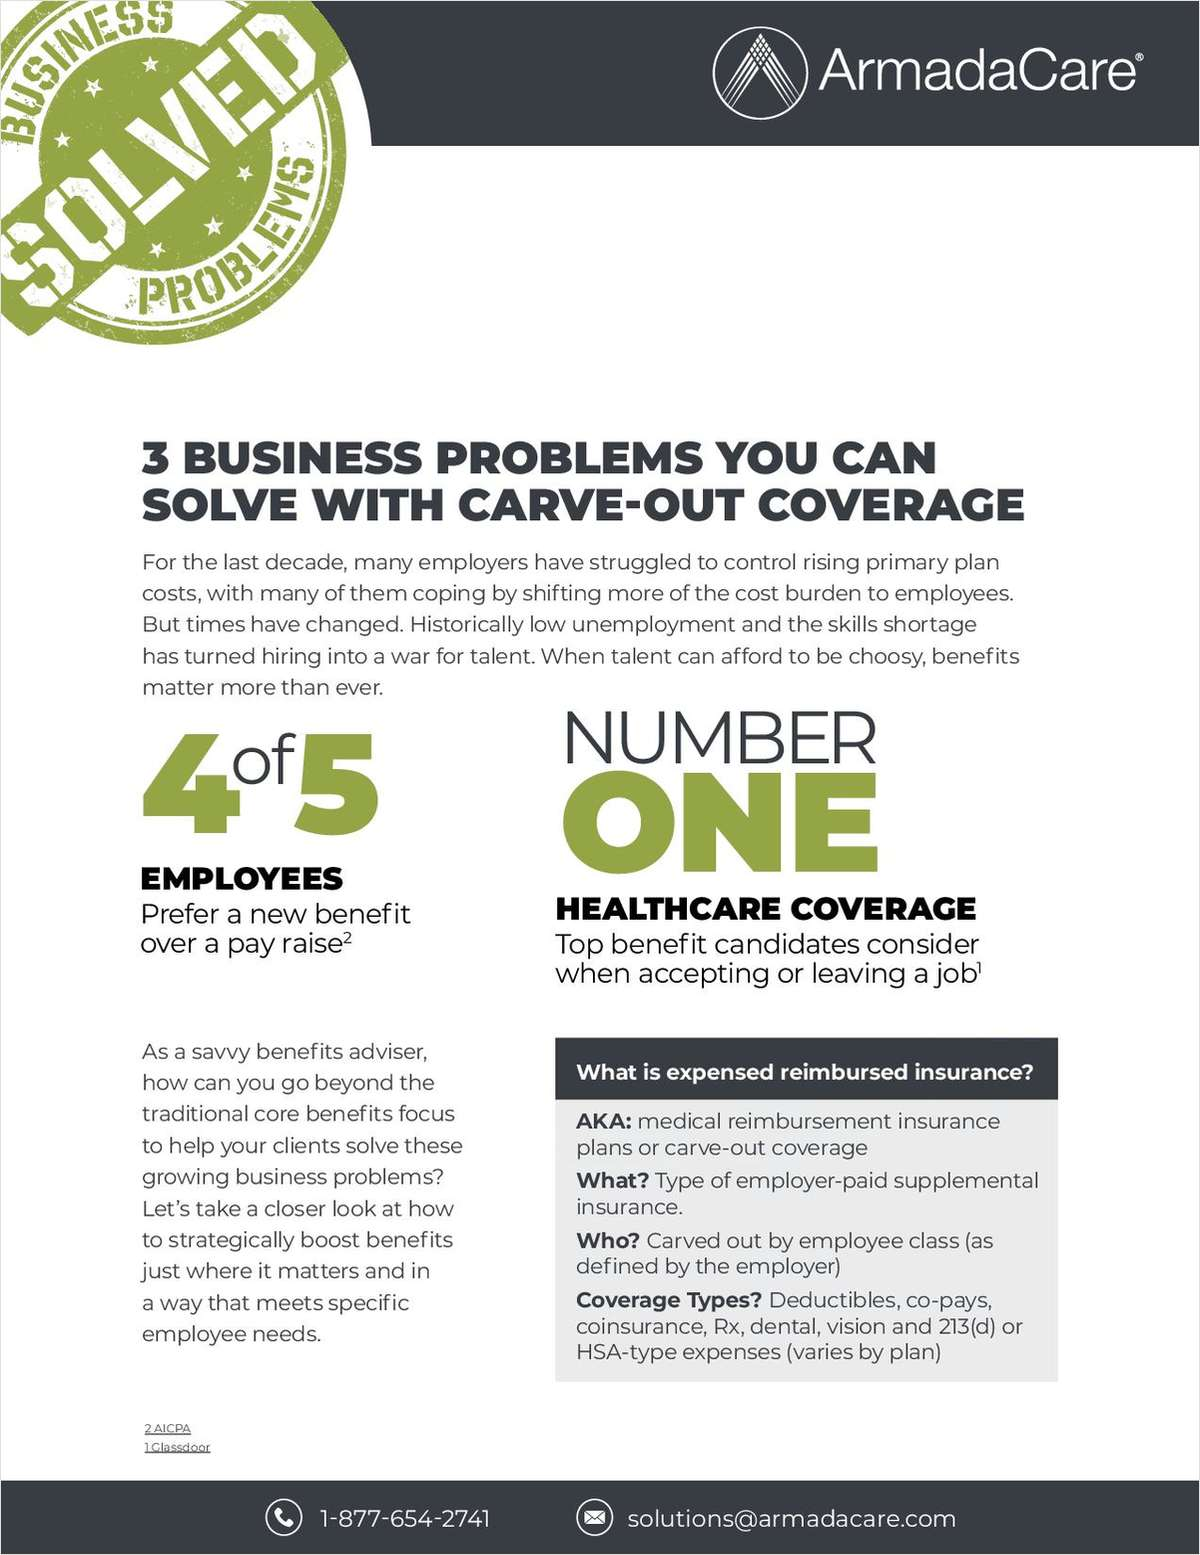 3 Business Problems You Can Solve With Carve-Out Coverage